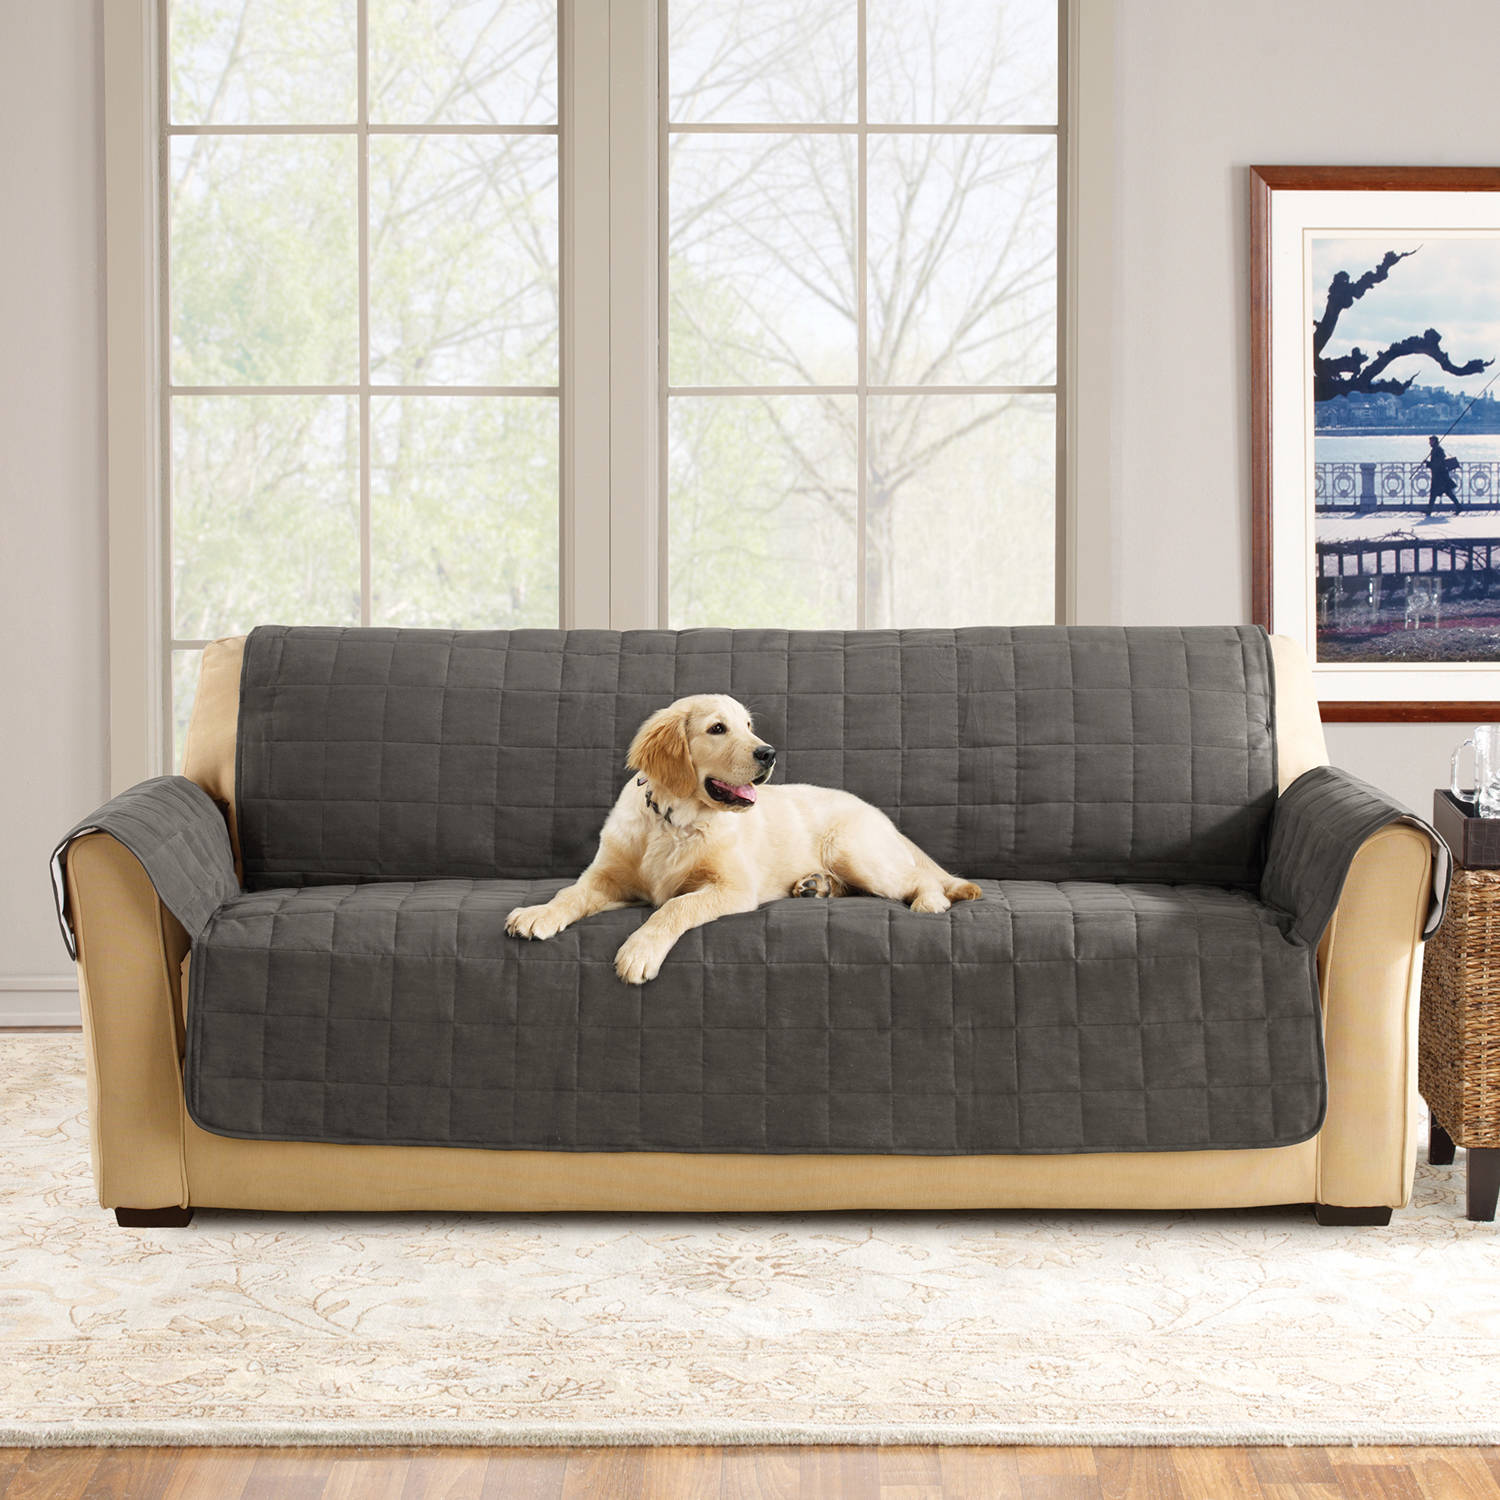 Delicieux Sure Fit Ultimate Waterproof Quilted Pet Sofa Cover